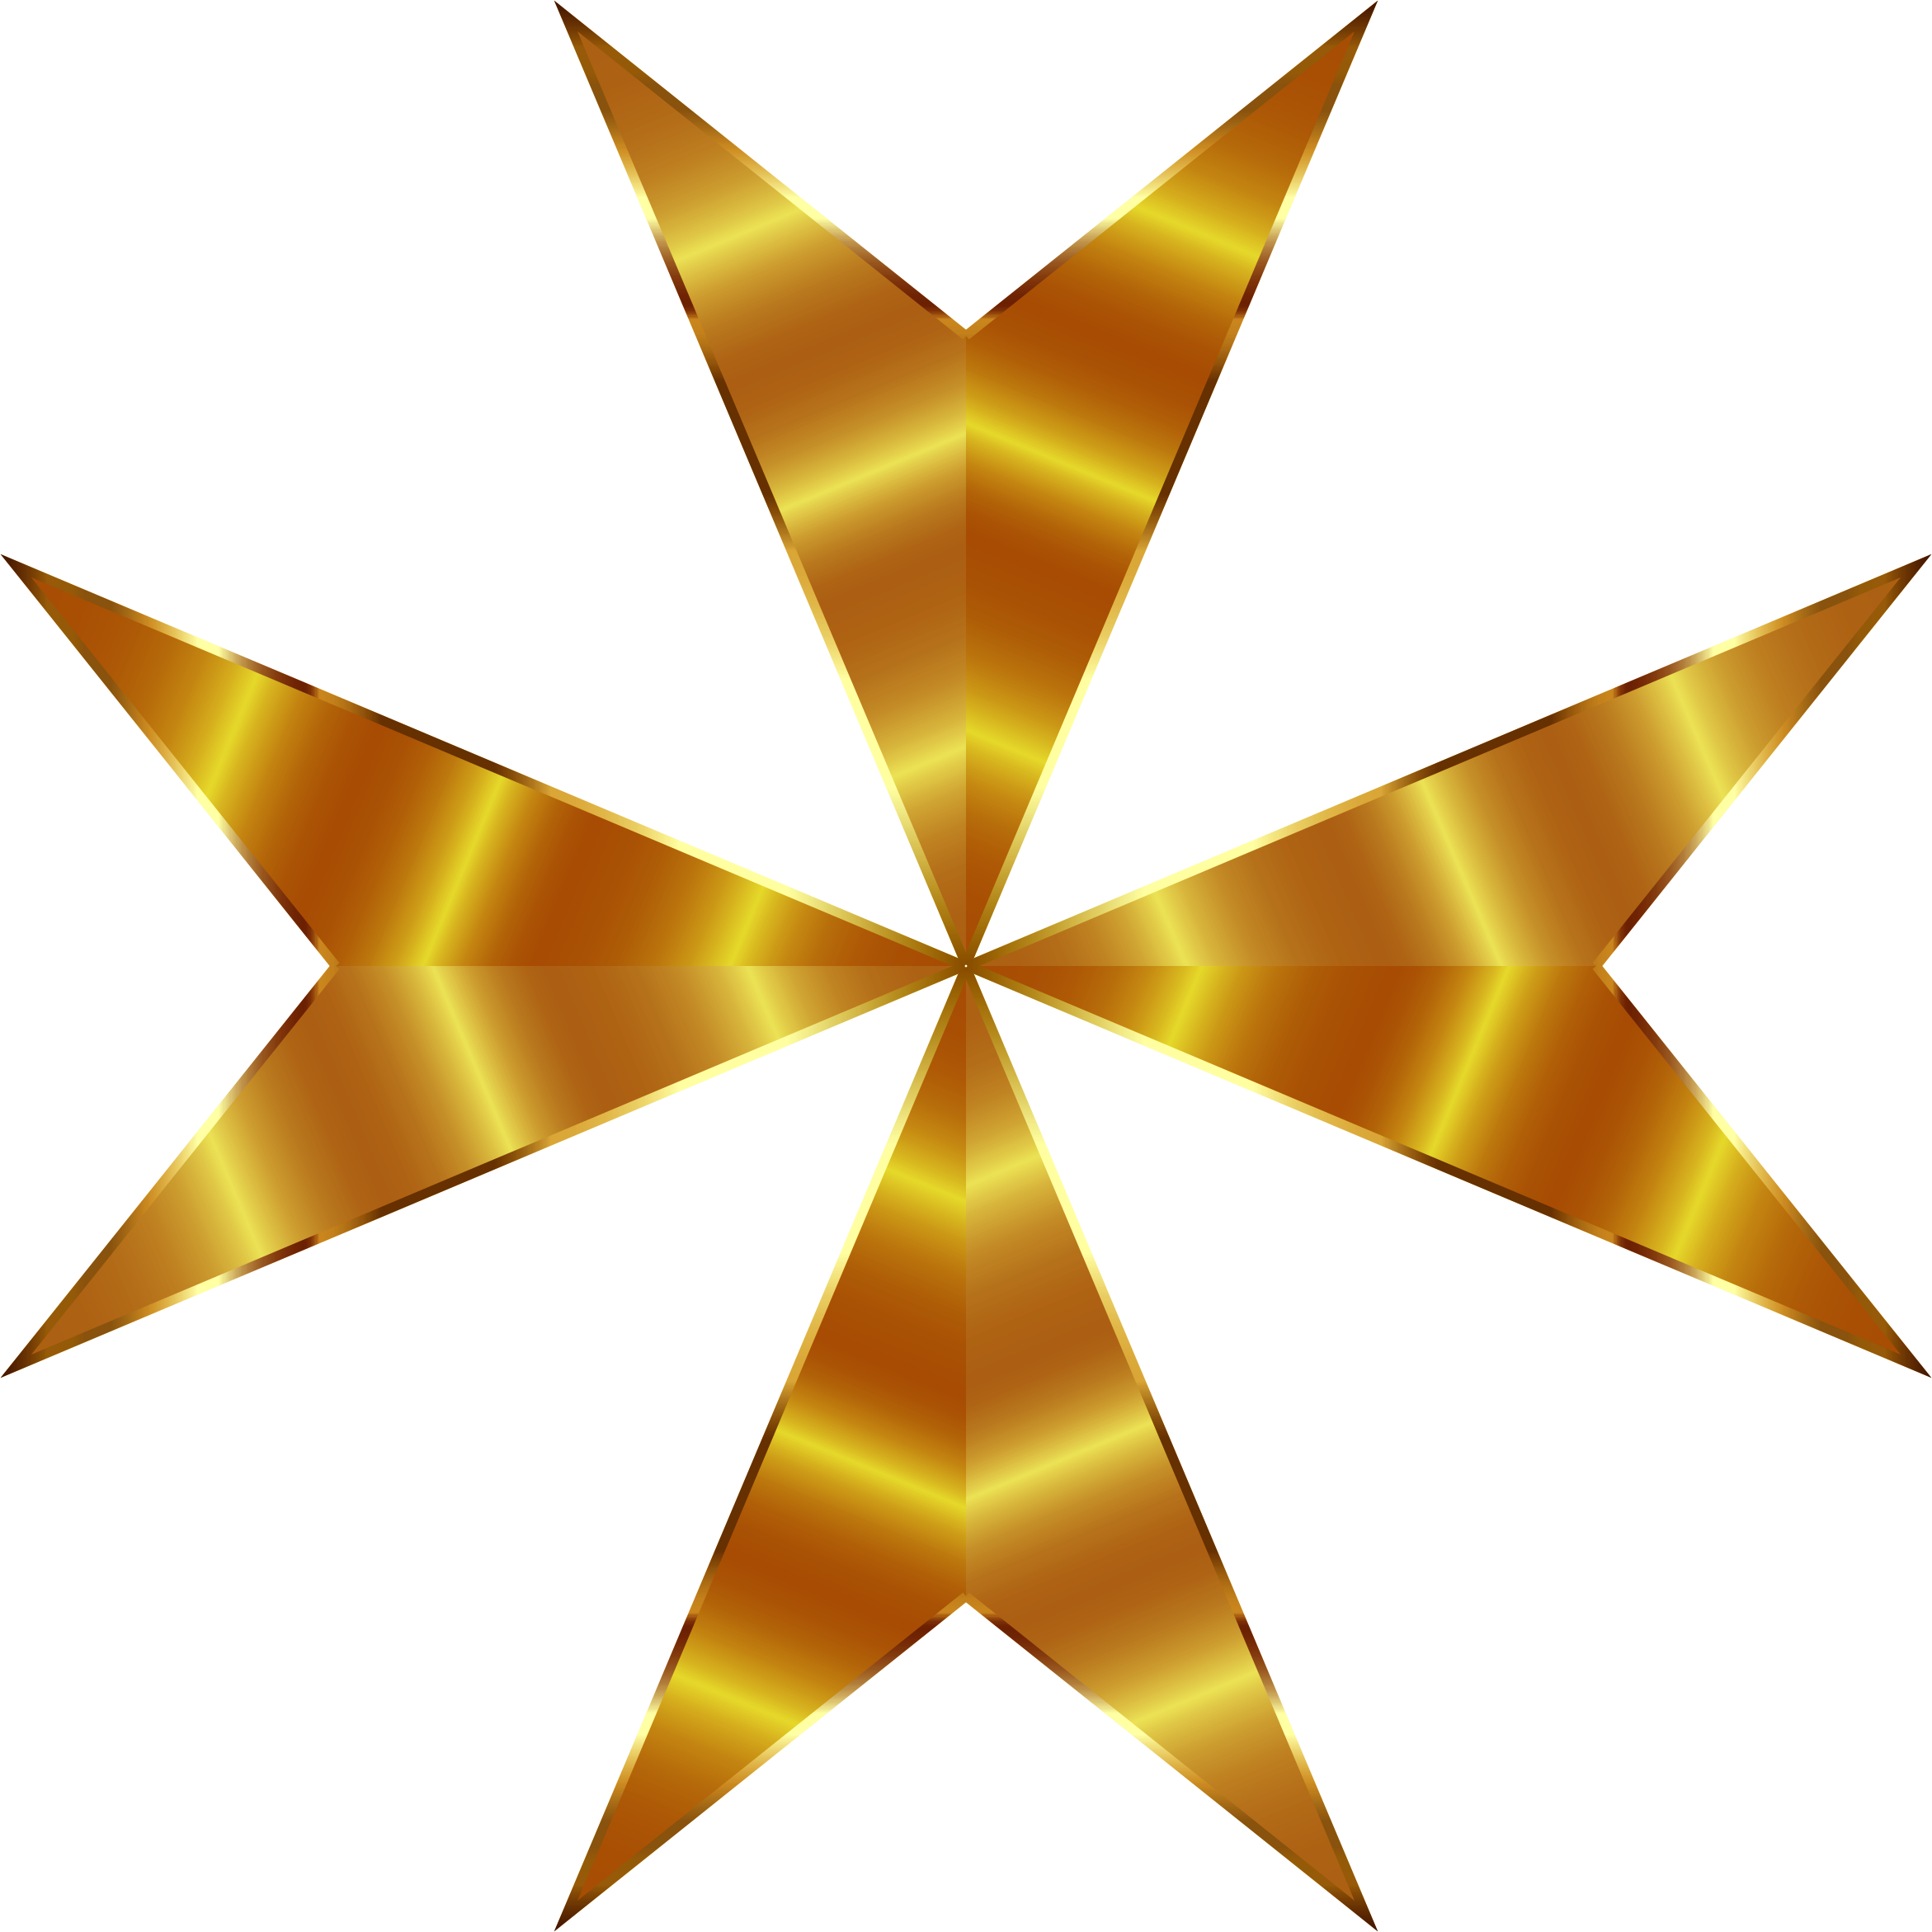 Gold Maltese Cross Mark II Enhanced by GDJ